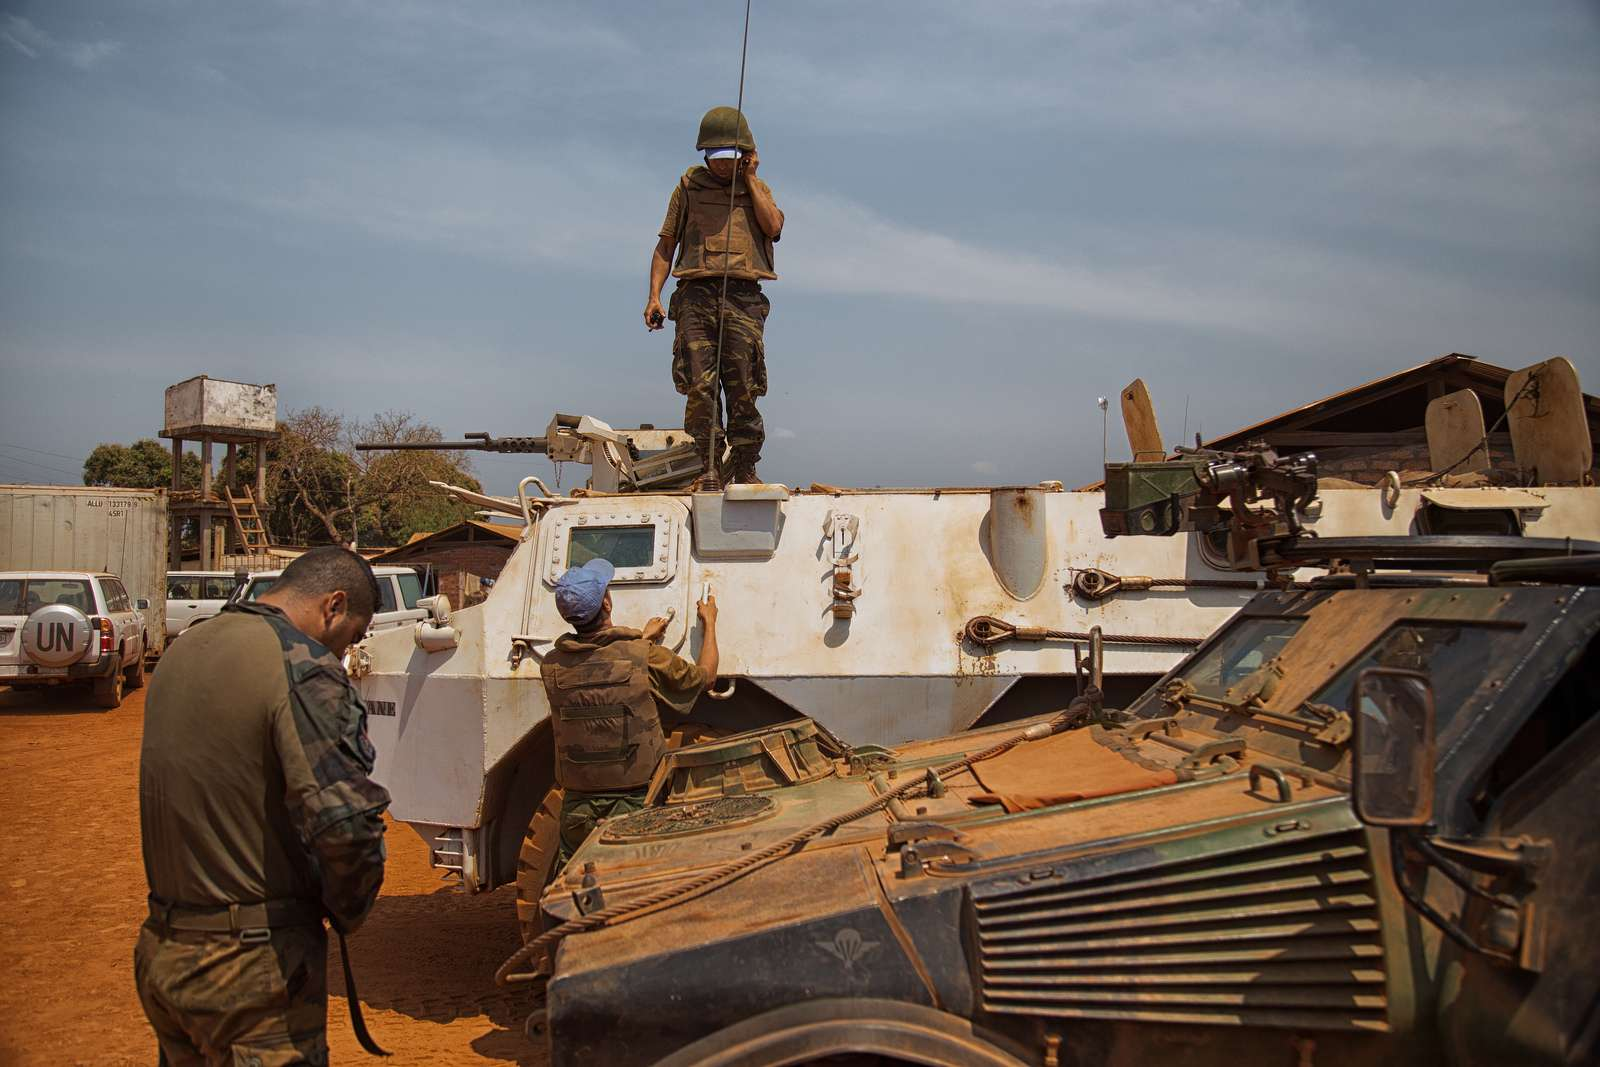 Photos - Véhicules blindées / Armored Vehicles, APC and IFV - Page 2 16333310